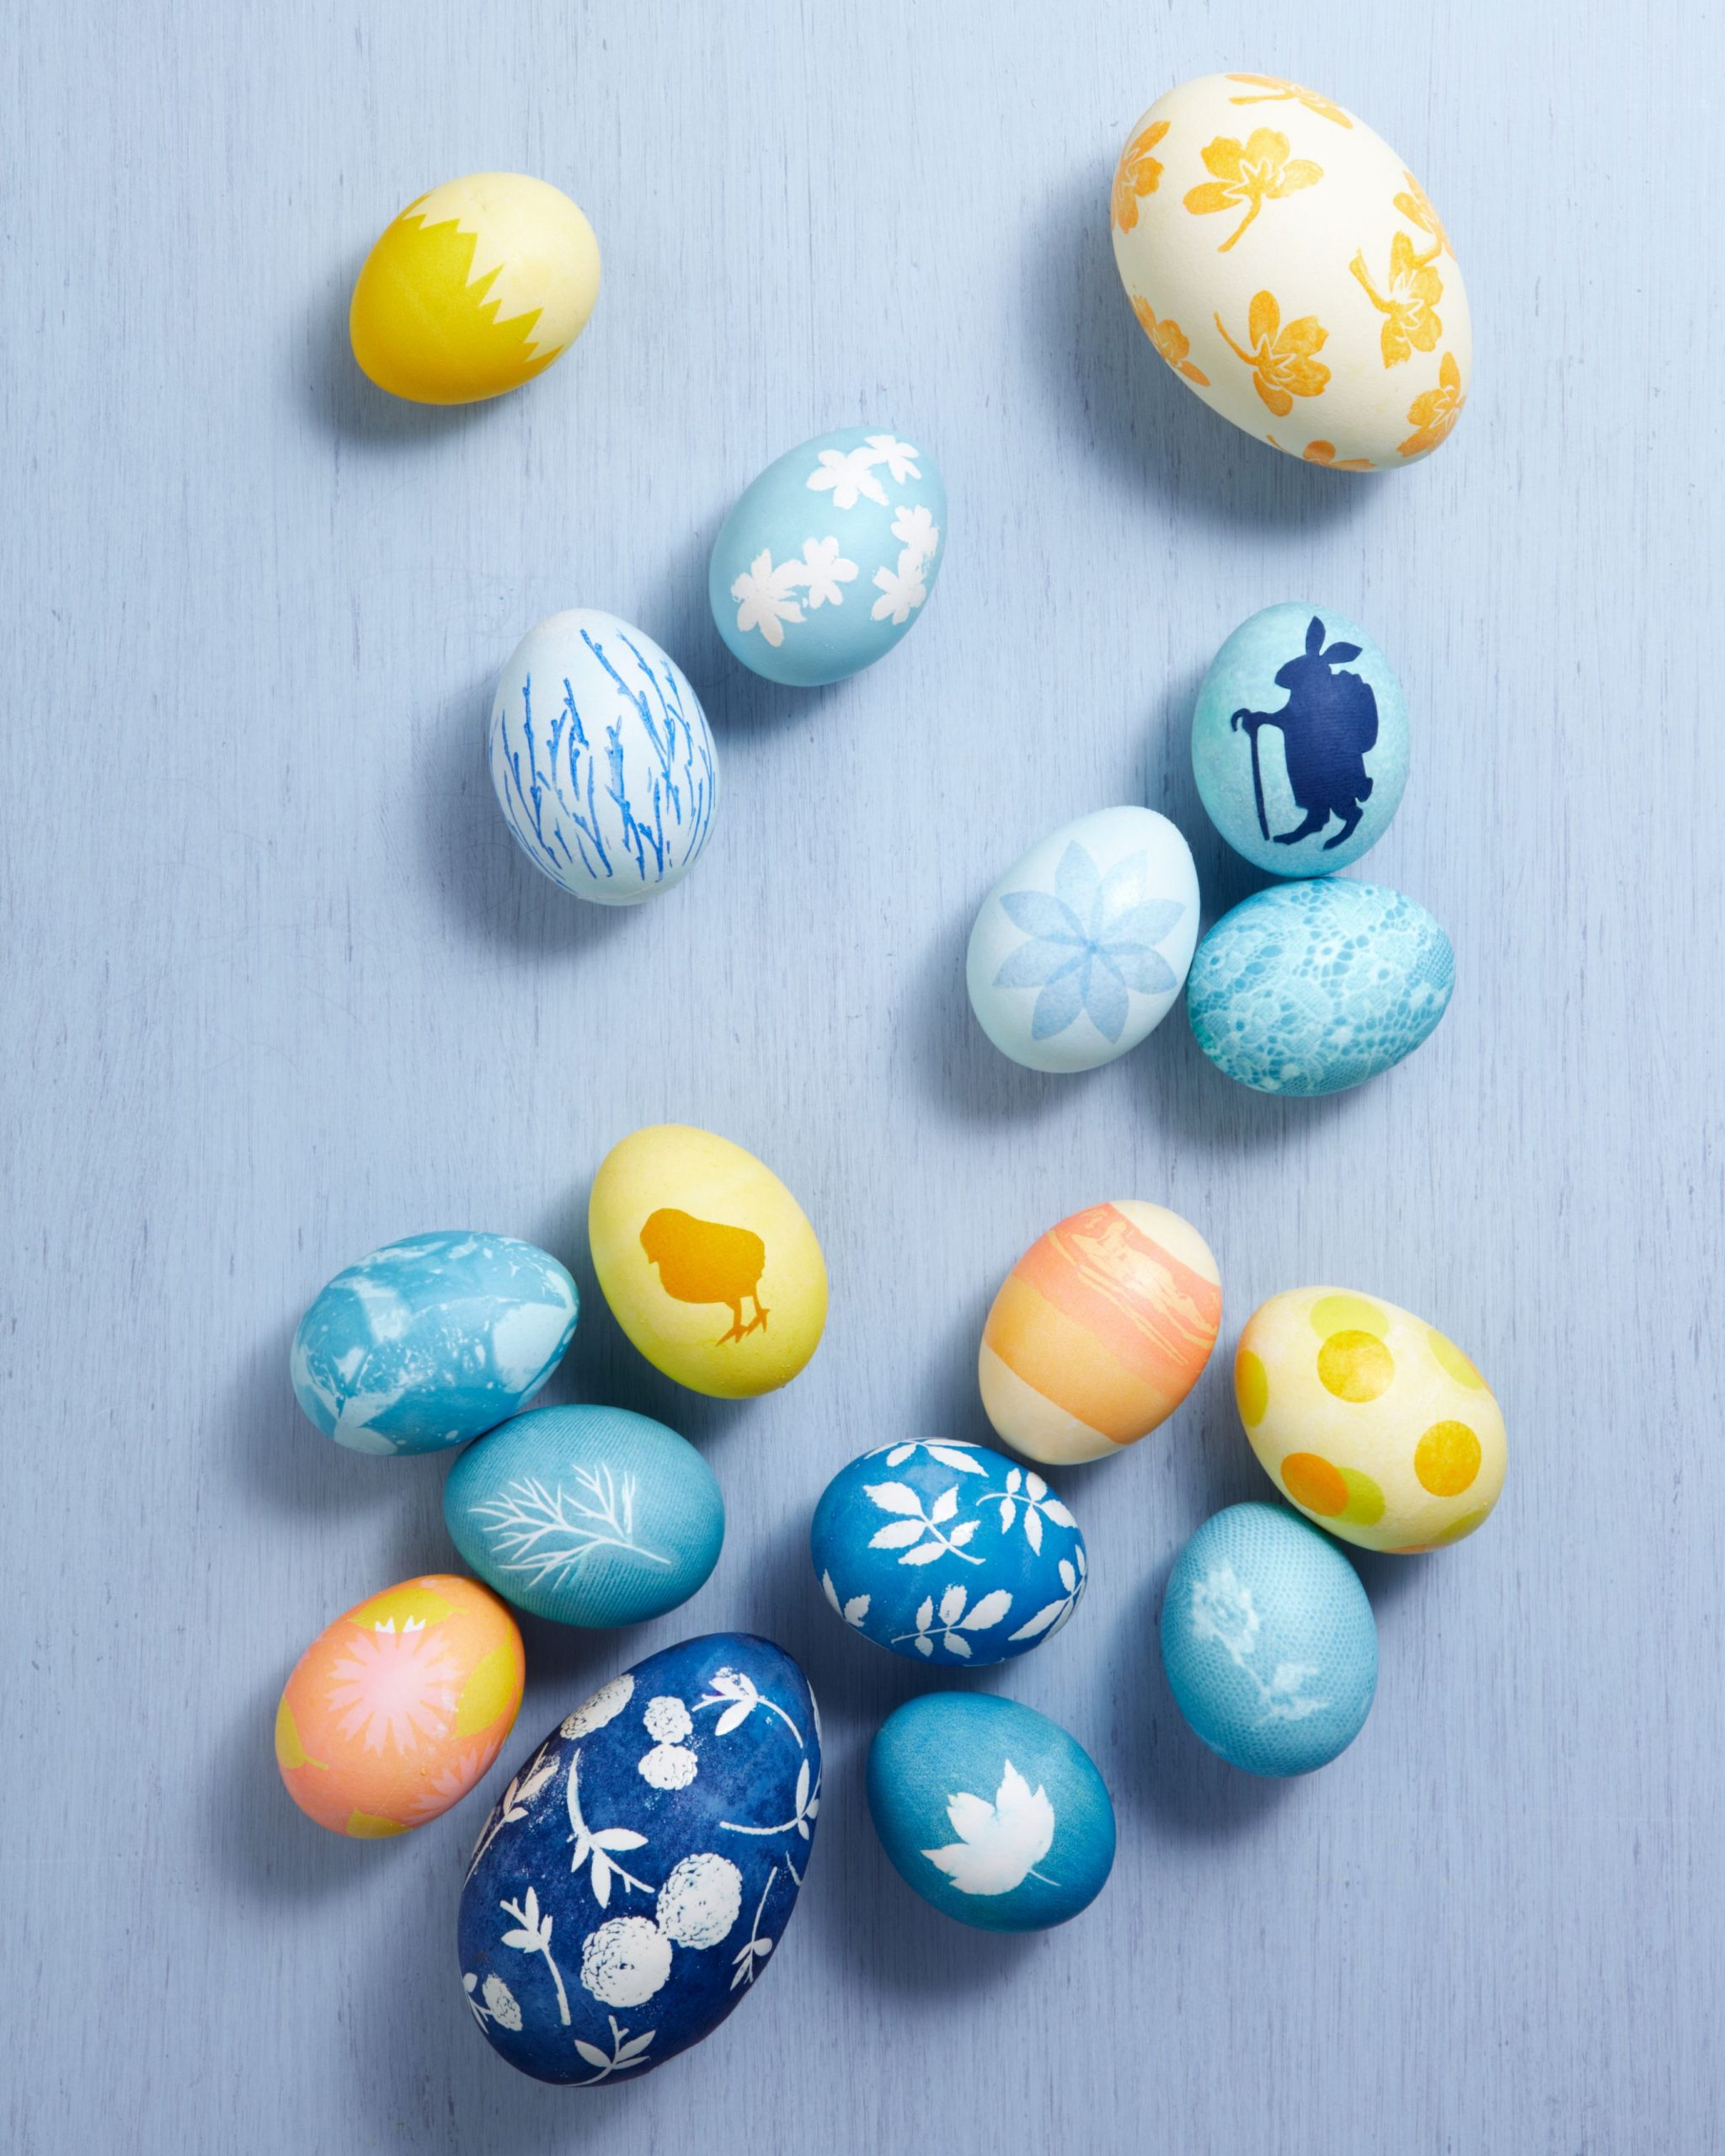 11 of Our All-Time Best Ideas for Decorating Easter Eggs | Martha ..